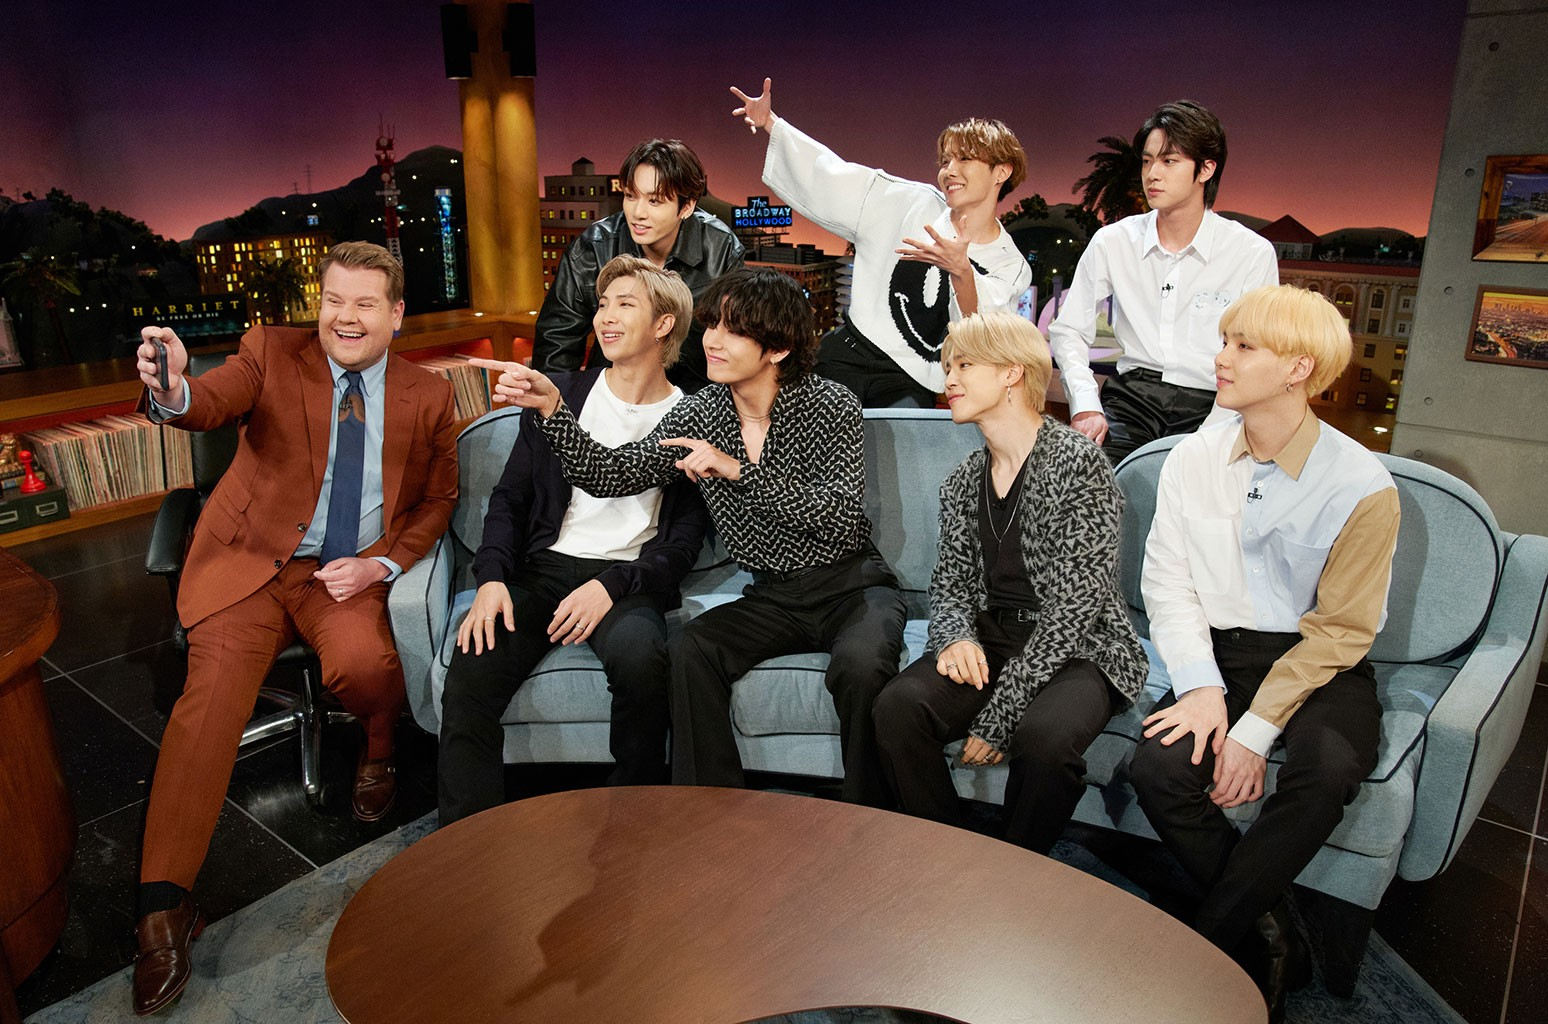 bts james corden late late show 2020 billboard 1548 compressed